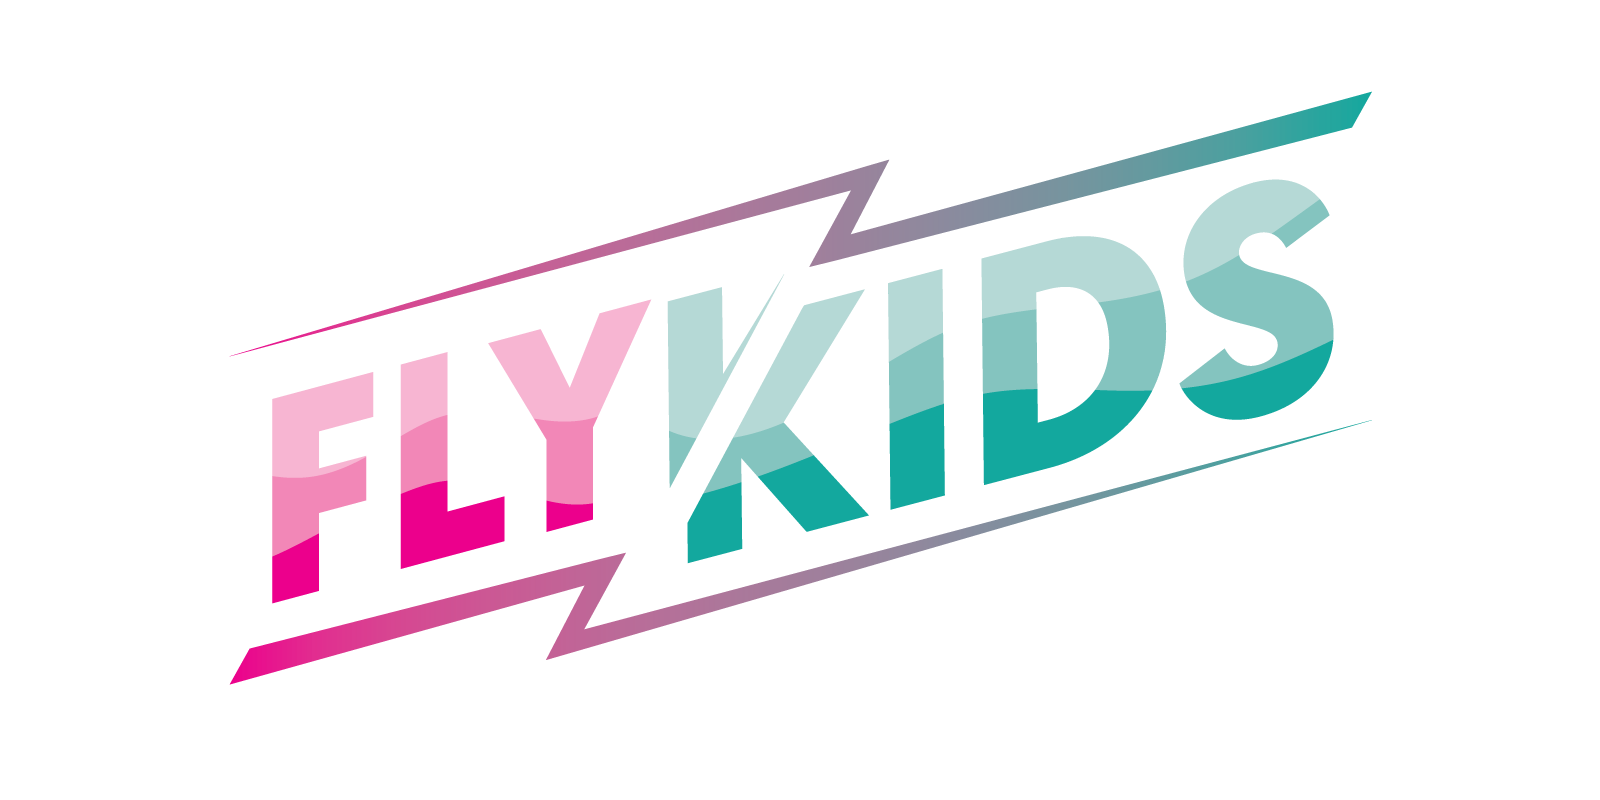 //fly-park.eu/radlin/wp-content/uploads/sites/5/2020/03/FlyKIDS_logo-e1584639556439.png